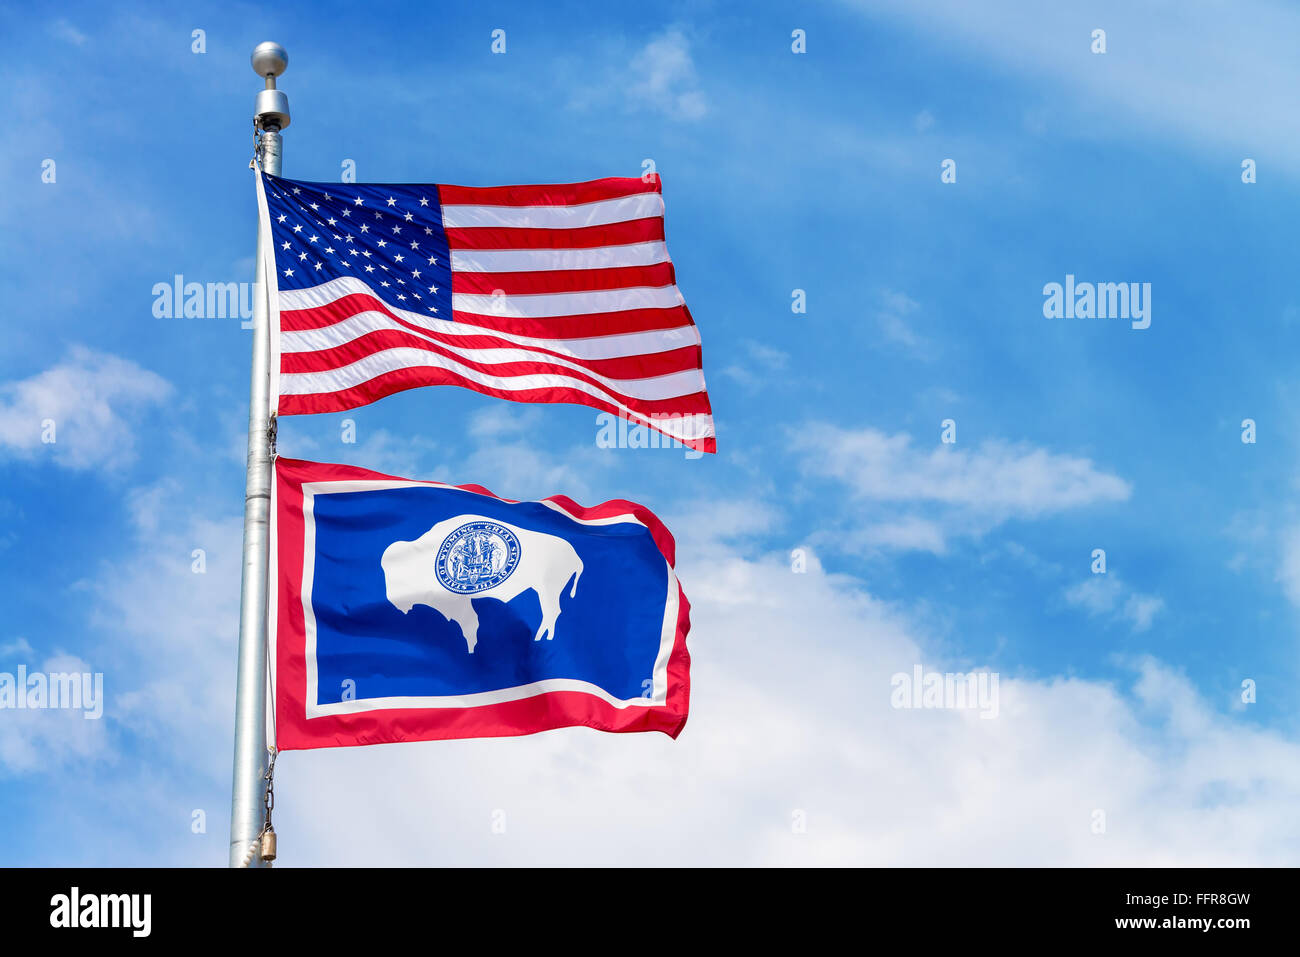 American flag flying a flag pole with the Wyoming state flag - Stock Image